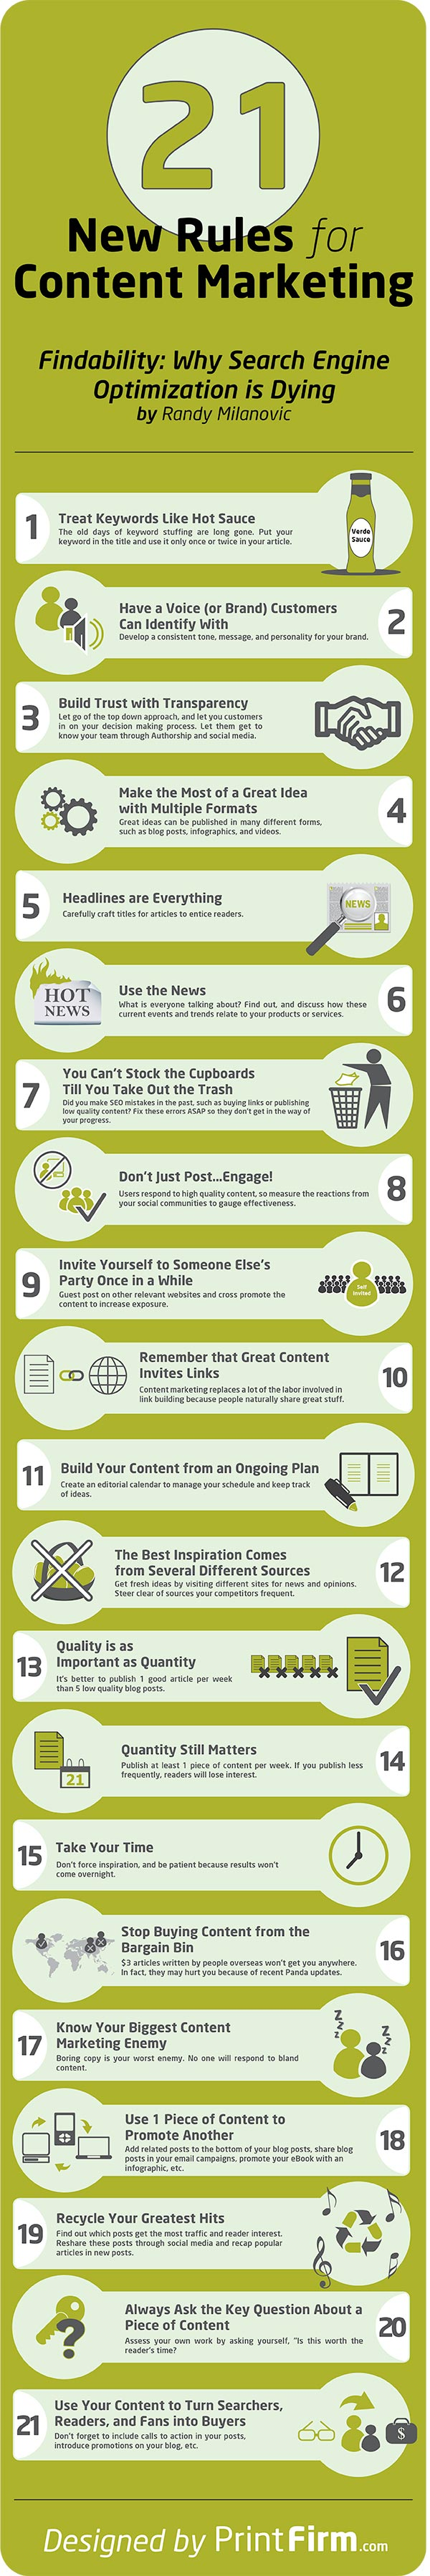 Findability-Content-marketing-infographic1